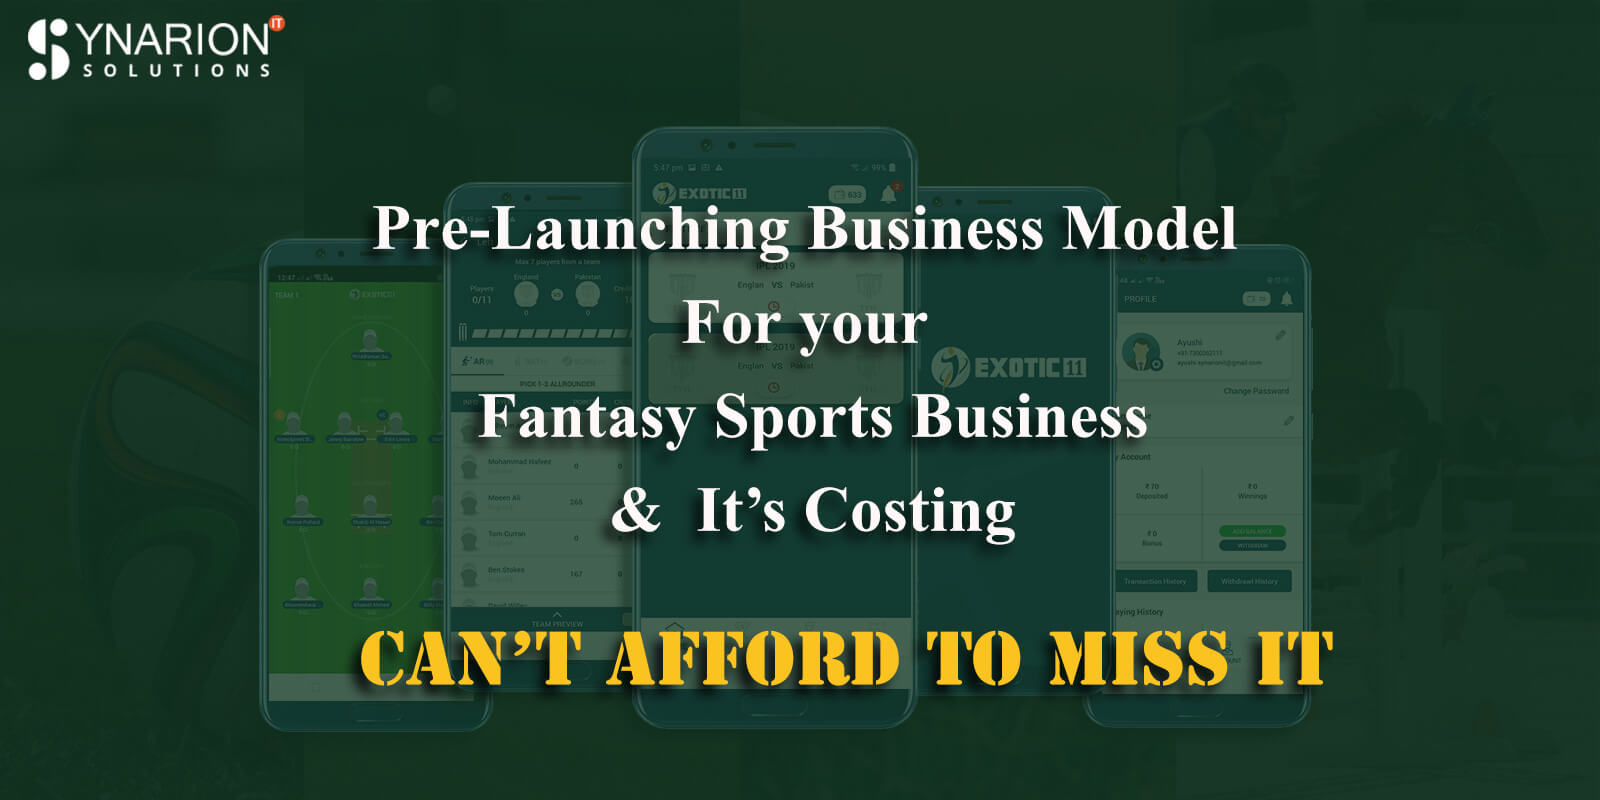 Pre-Launching Business Model for your Fantasy Sports Business and it's costing Can't afford to miss it